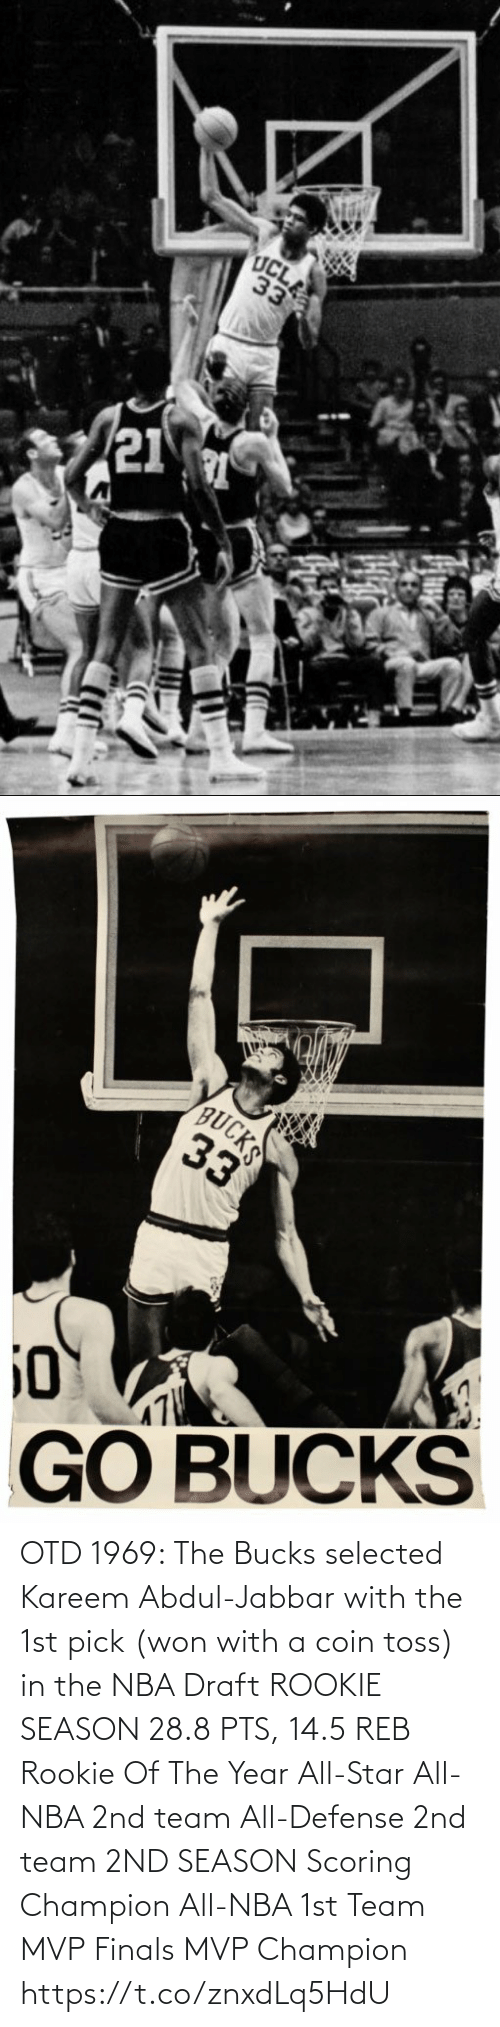 Selected: OTD 1969: The Bucks selected Kareem Abdul-Jabbar with the 1st pick (won with a coin toss) in the NBA Draft   ROOKIE SEASON 28.8 PTS, 14.5 REB Rookie Of The Year All-Star All-NBA 2nd team All-Defense 2nd team  2ND SEASON Scoring Champion All-NBA 1st Team MVP Finals MVP Champion https://t.co/znxdLq5HdU